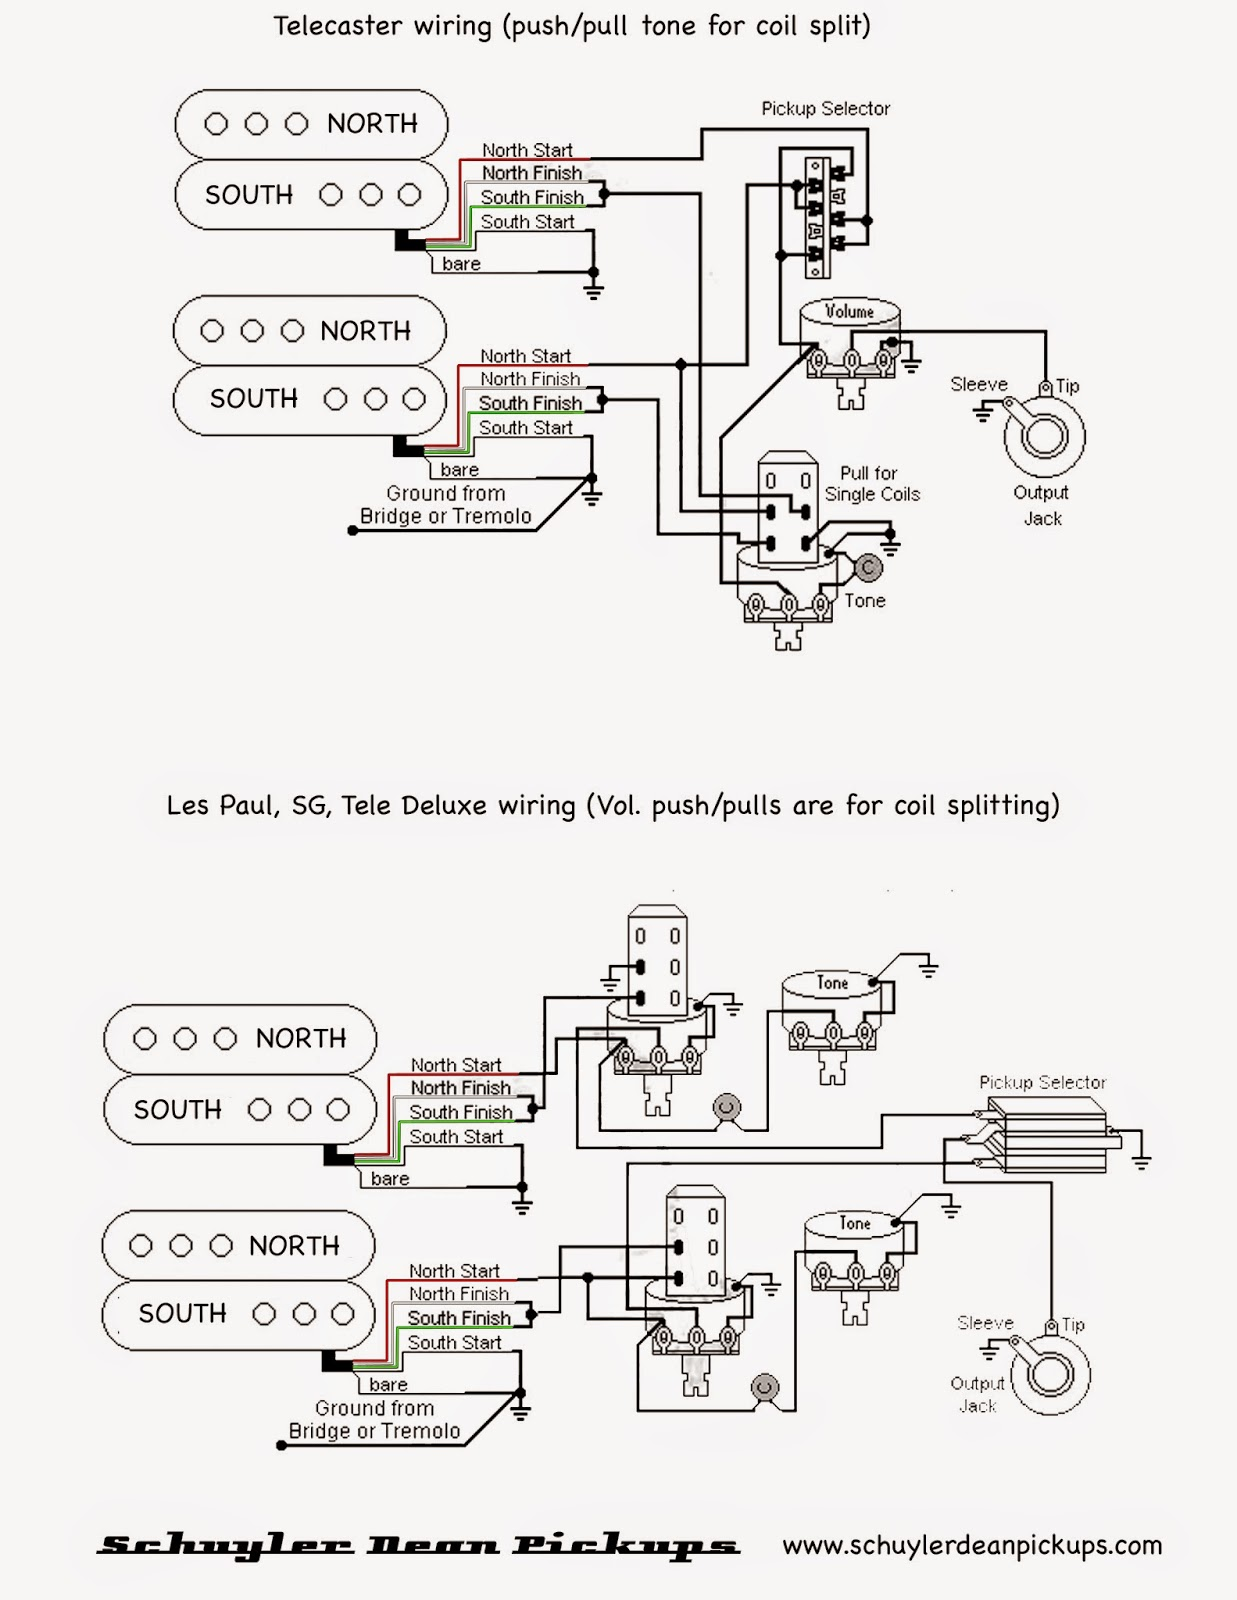 Wiring%2Bdiagram%2BTele LP schuyler dean pickups splitting humbucker coils humbucker coil split wiring diagram at bayanpartner.co